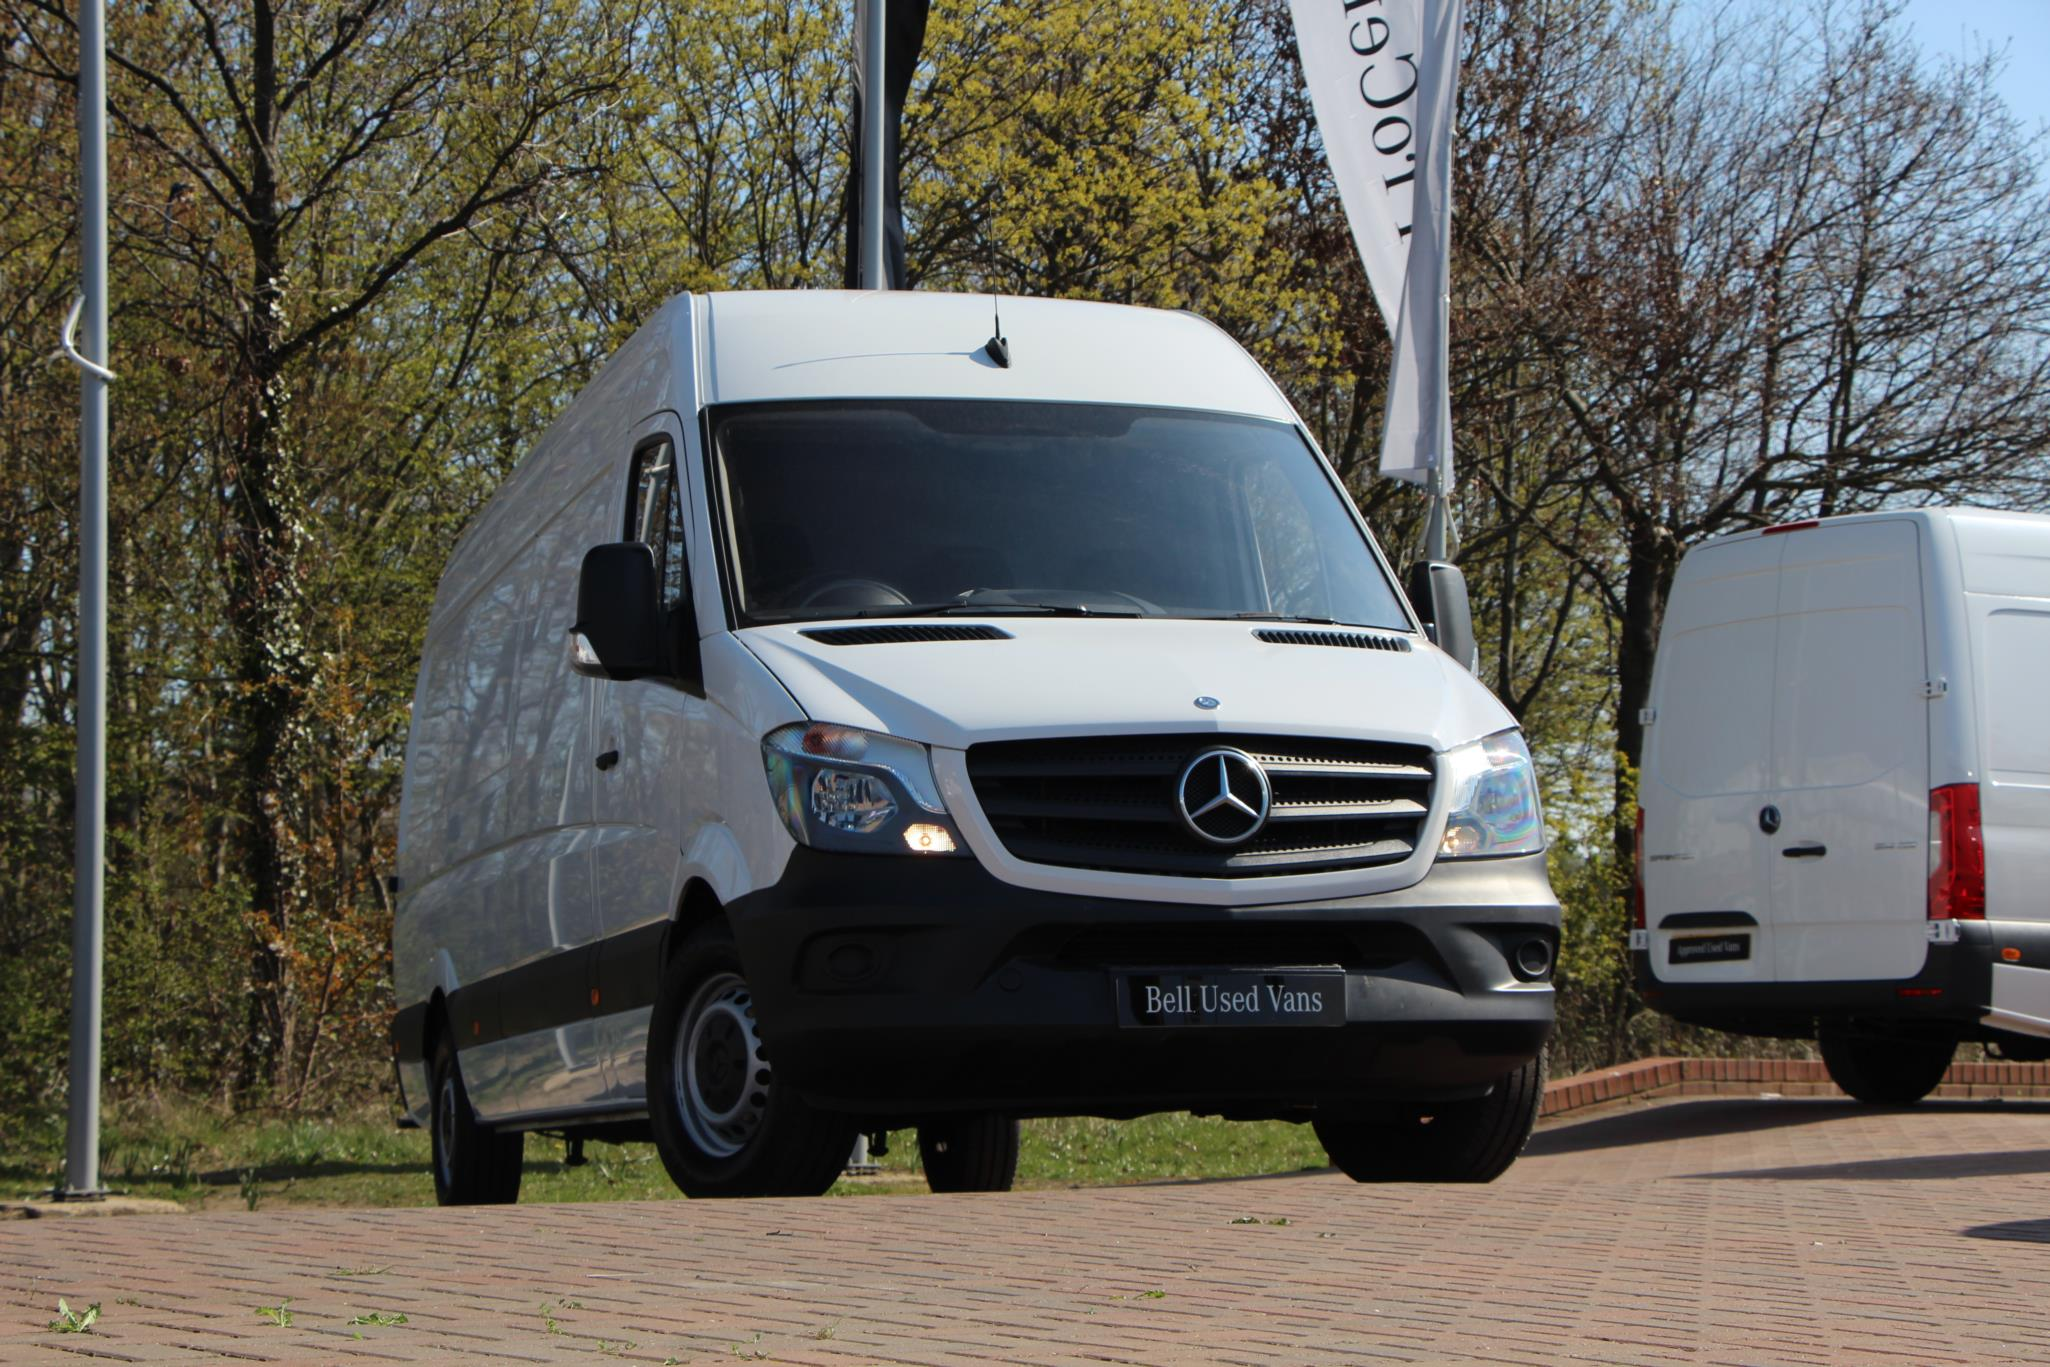 3fe4fde900 Mercedes-Benz Sprinter 313CDI Van Image 1. Low finance available